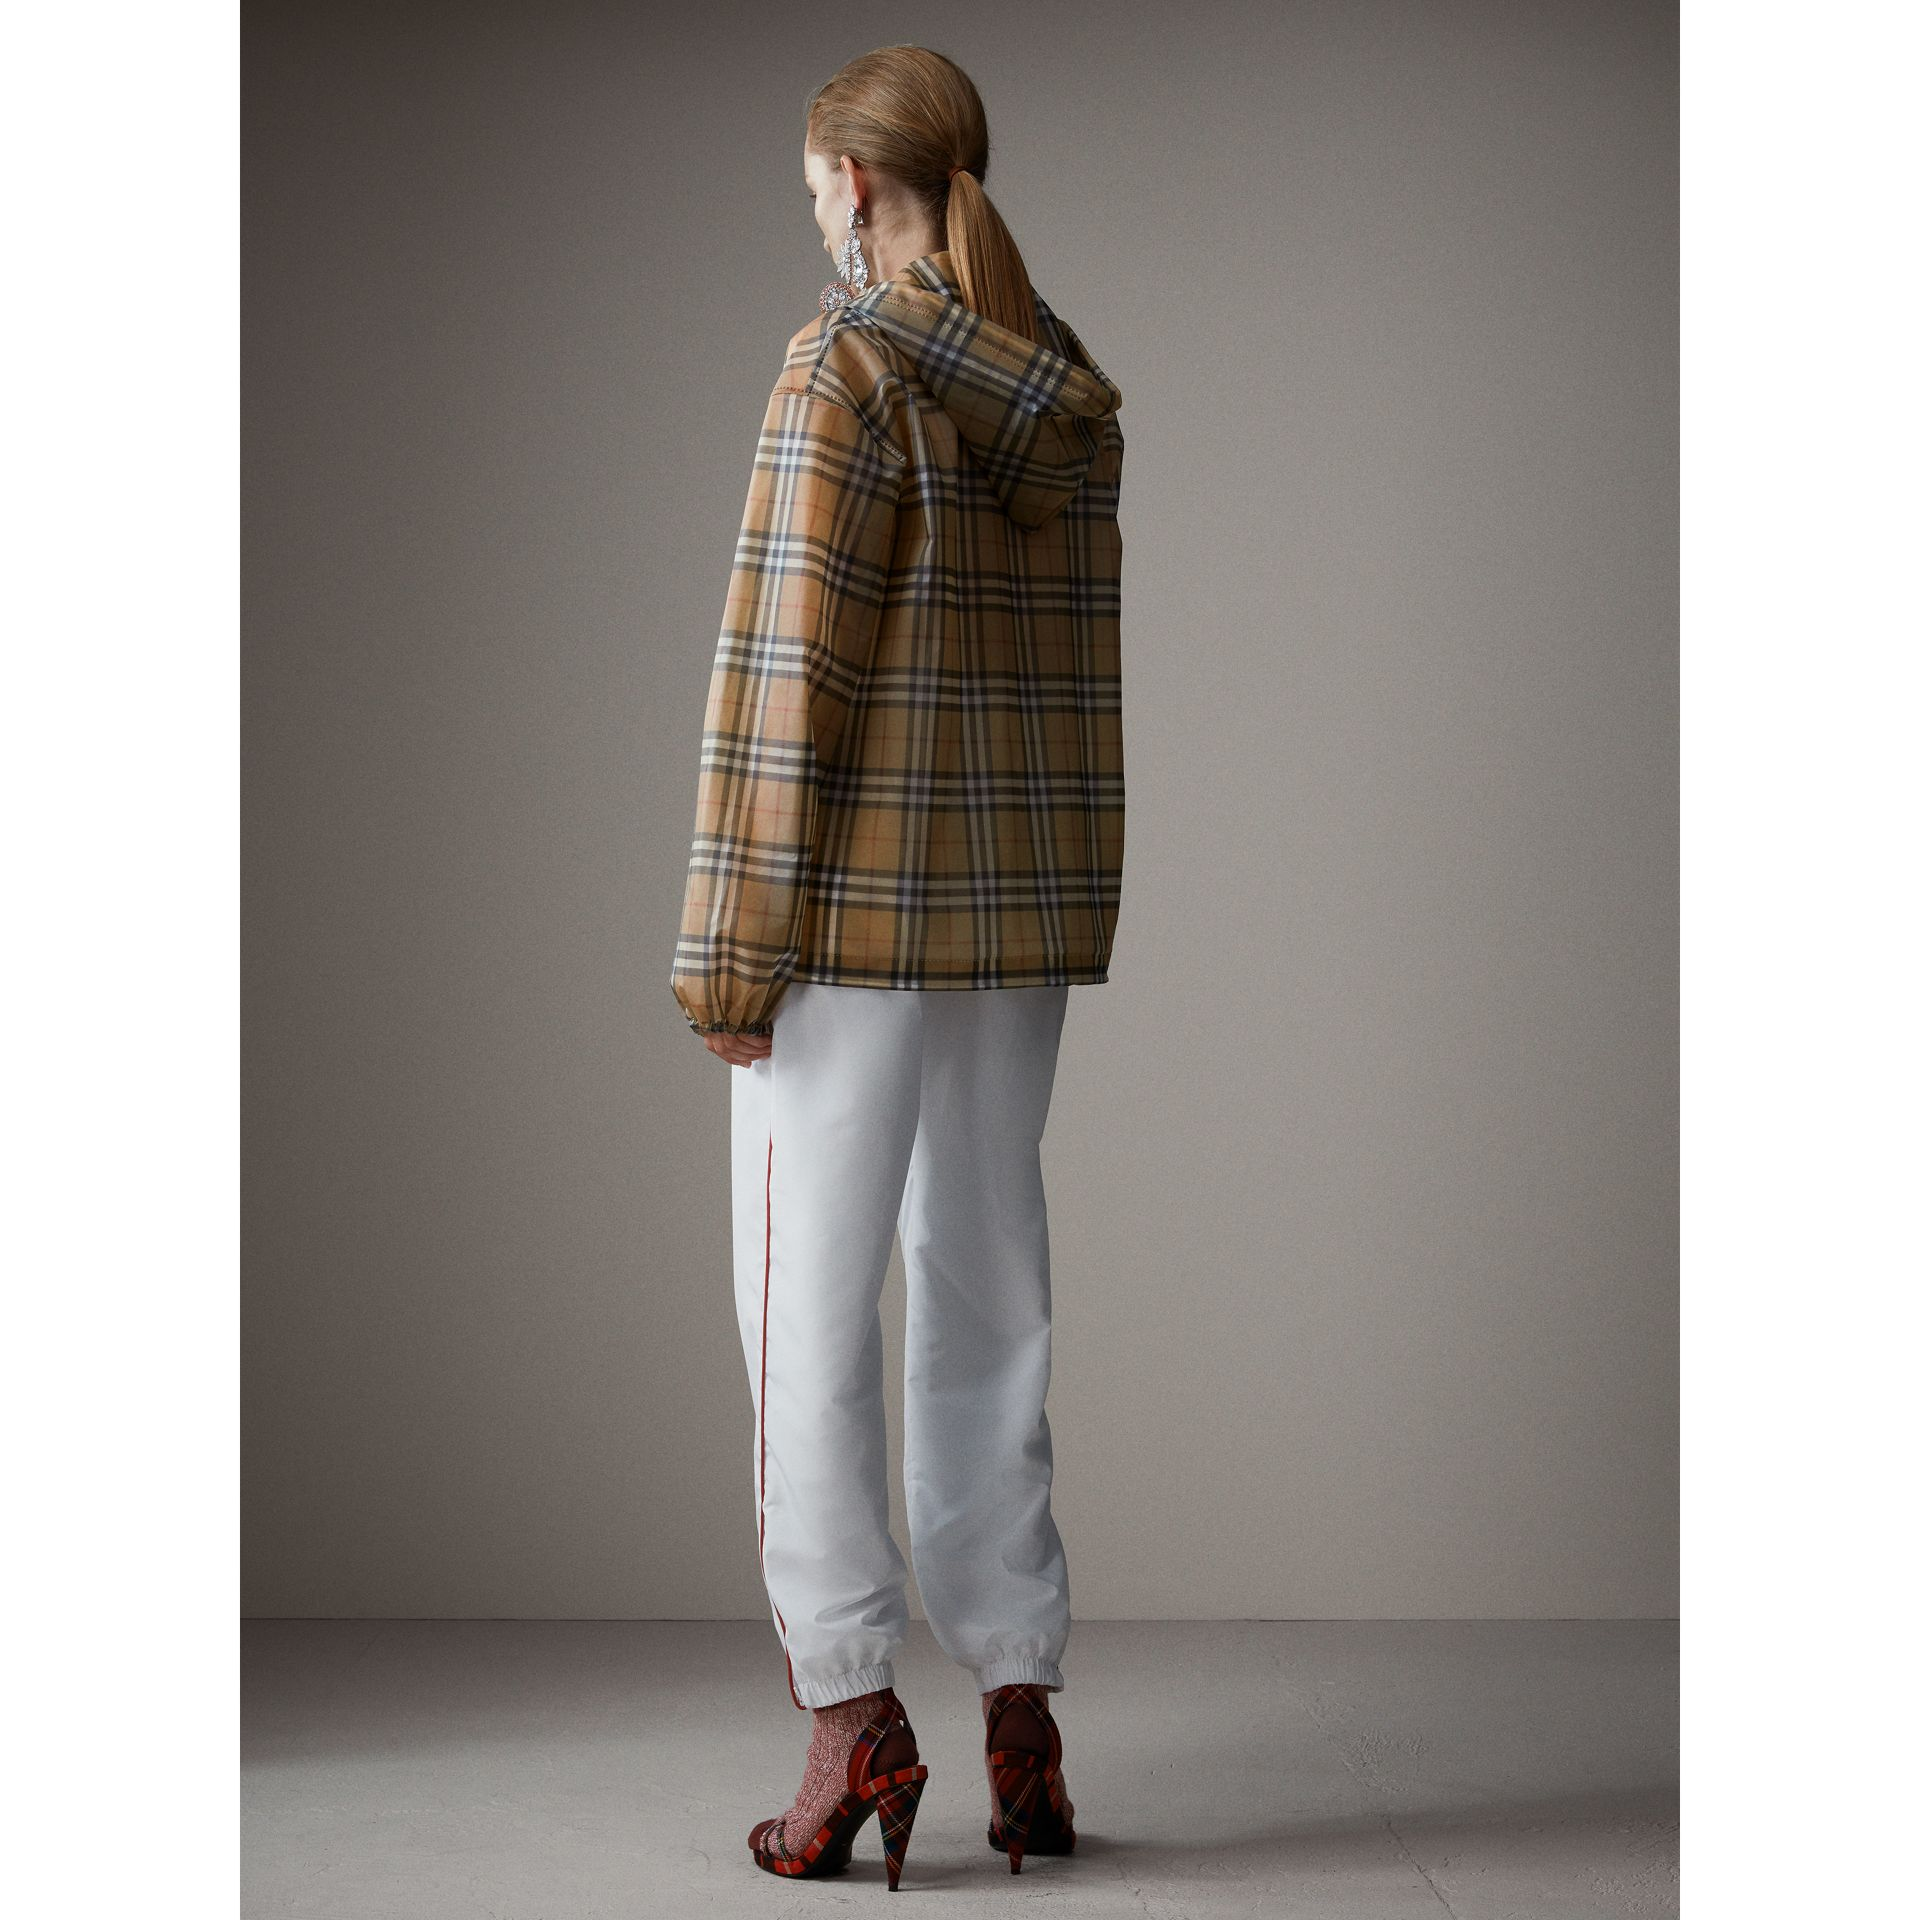 Vintage Check Soft-touch Plastic Cagoule in Antique Yellow - Women | Burberry Hong Kong - gallery image 3